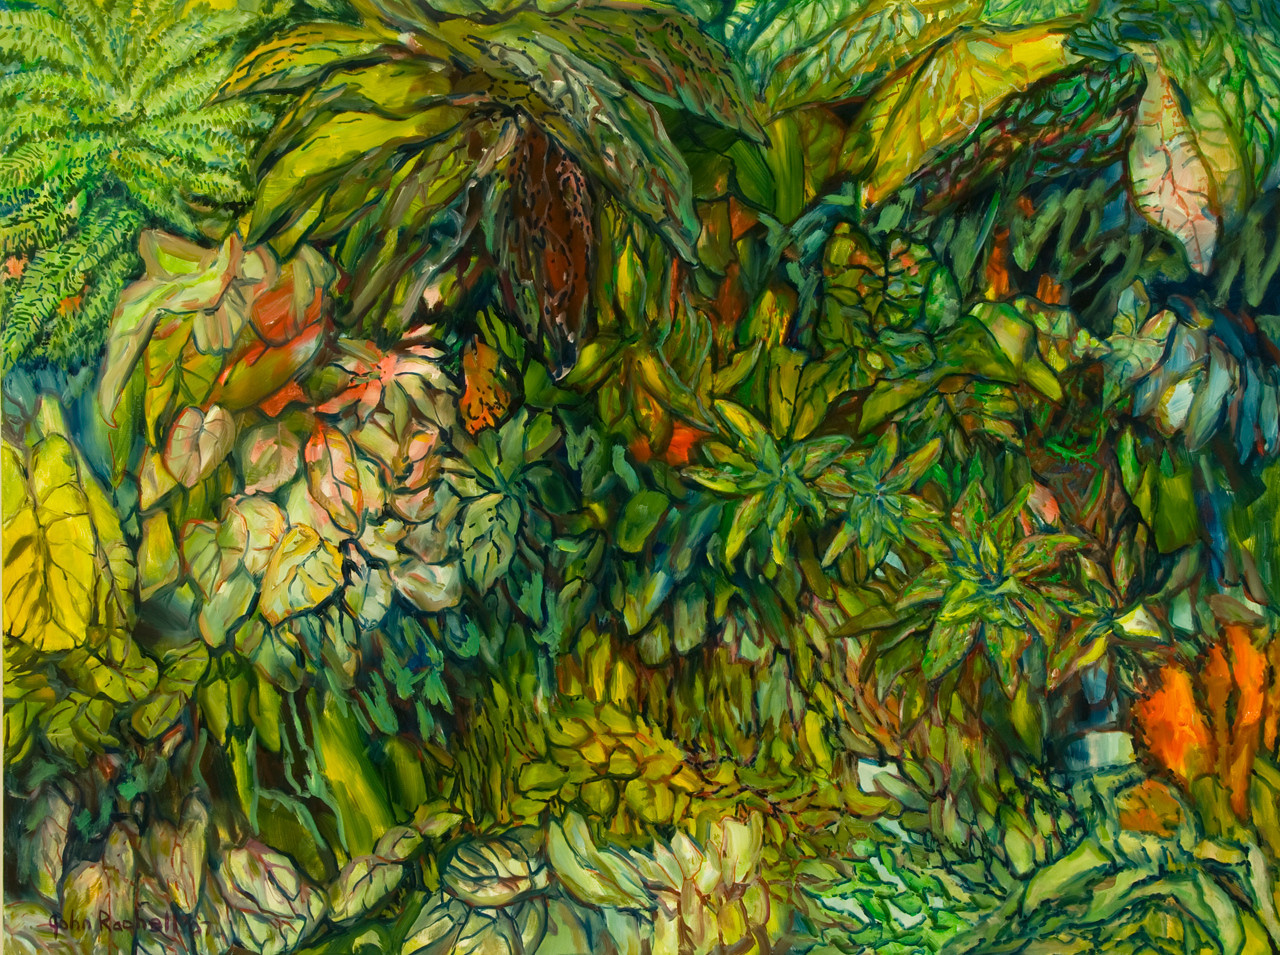 "©John Rachell Title: The Garden, July 18, 2007 Image Size: 48"" w by 36"" d Dated: 2007 Medium & Support: Oil paint on canvas Signed: LL Signature"